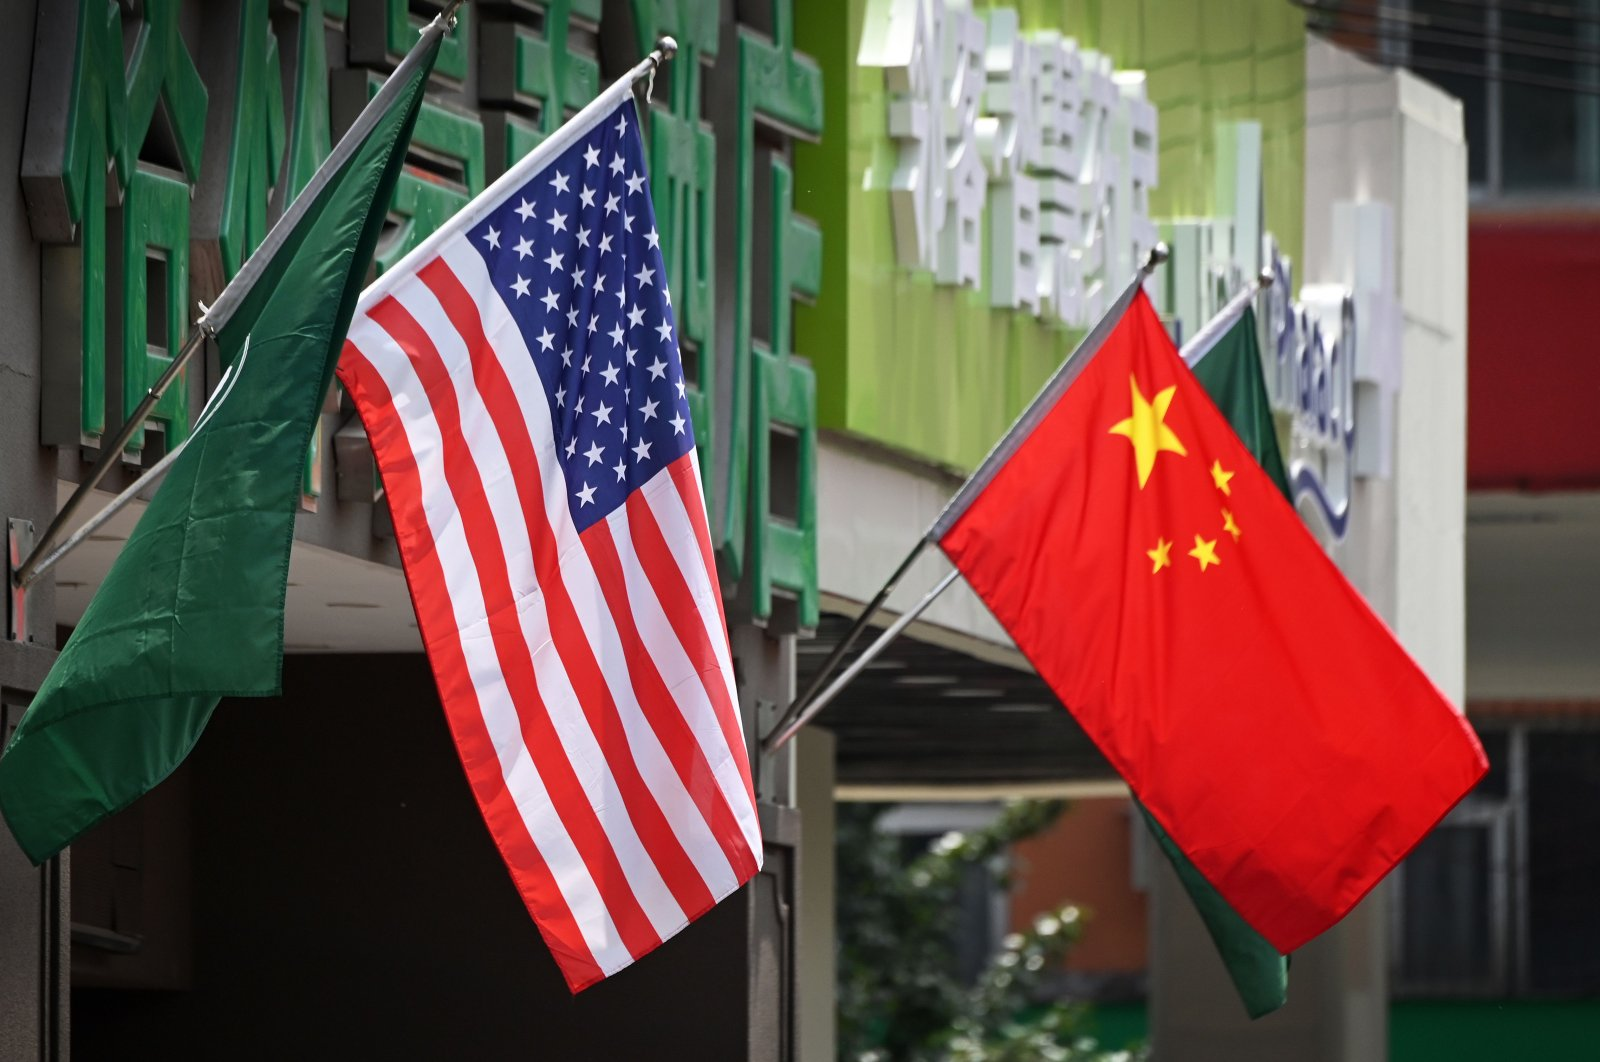 U.S. and Chinese flags displayed outside a hotel in Beijing, China, May 14, 2019. (AFP Photo)